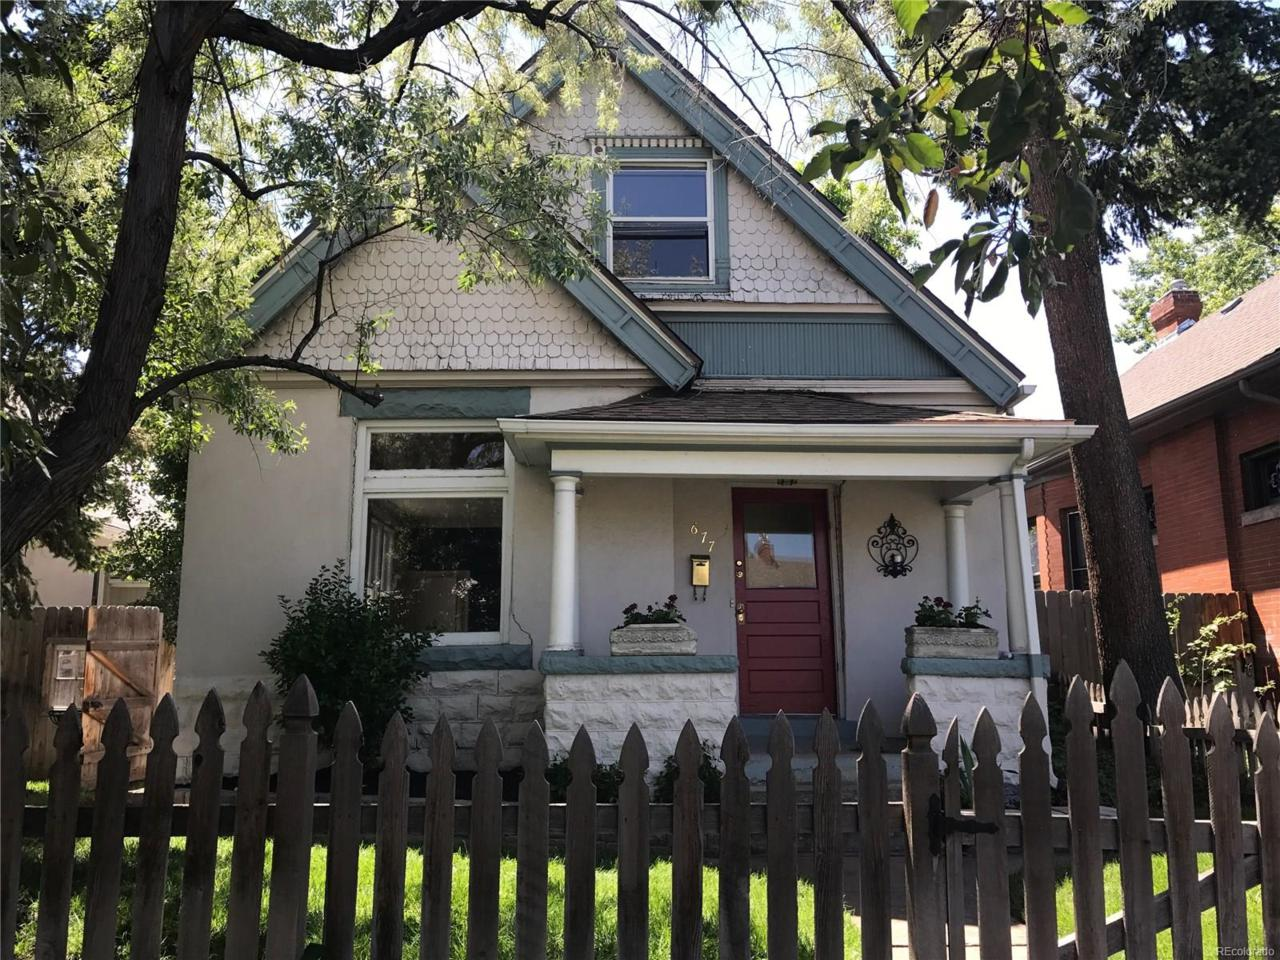 677 S Washington Street, Denver, CO 80209 (MLS #1641338) :: 8z Real Estate